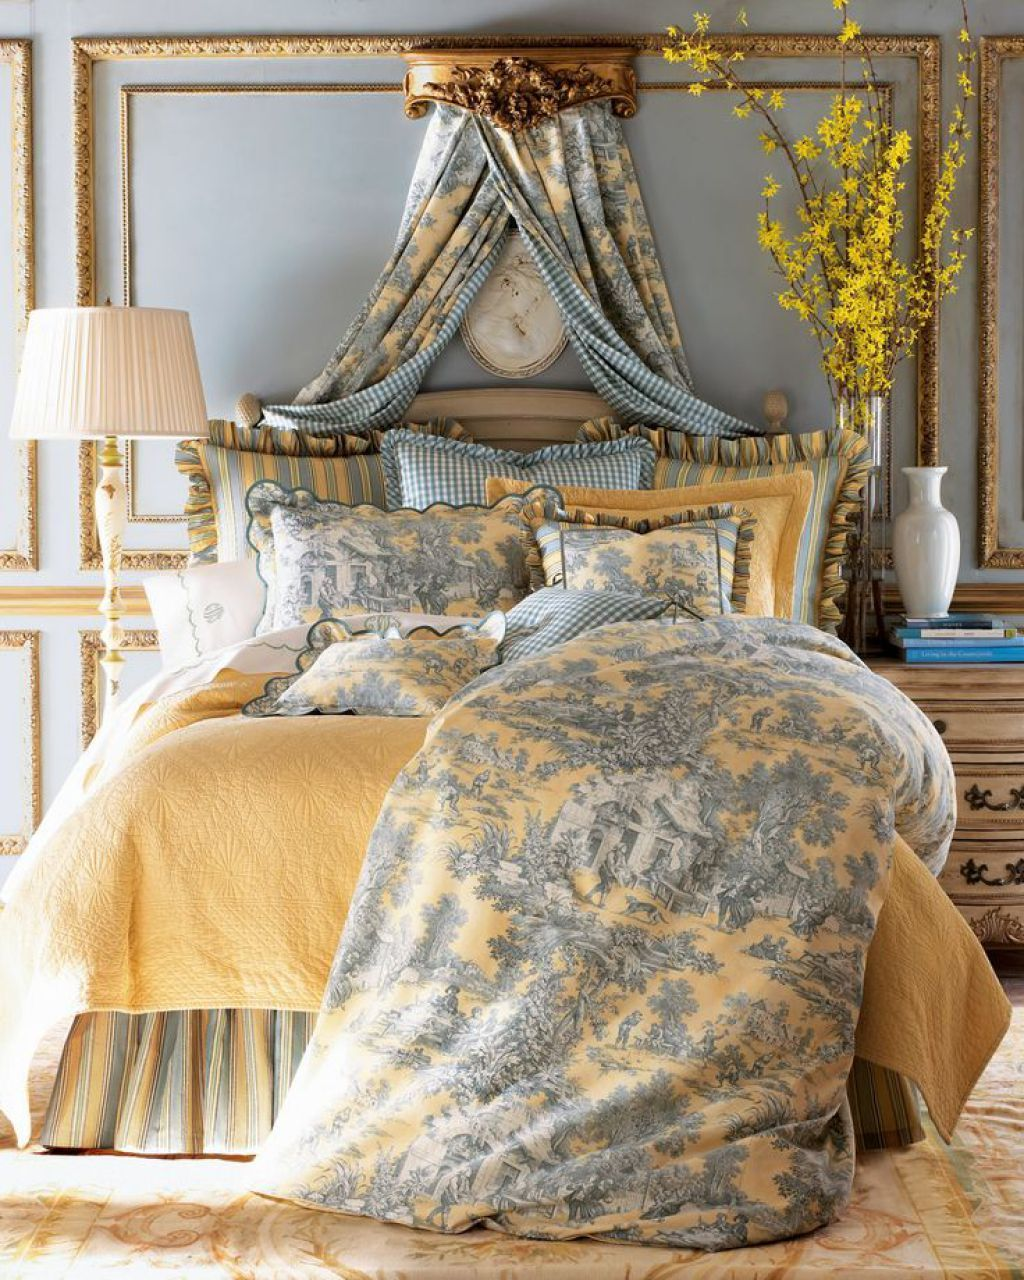 Bedroom Decorating Ideas Totally Toile: Pin On Toile 1.5